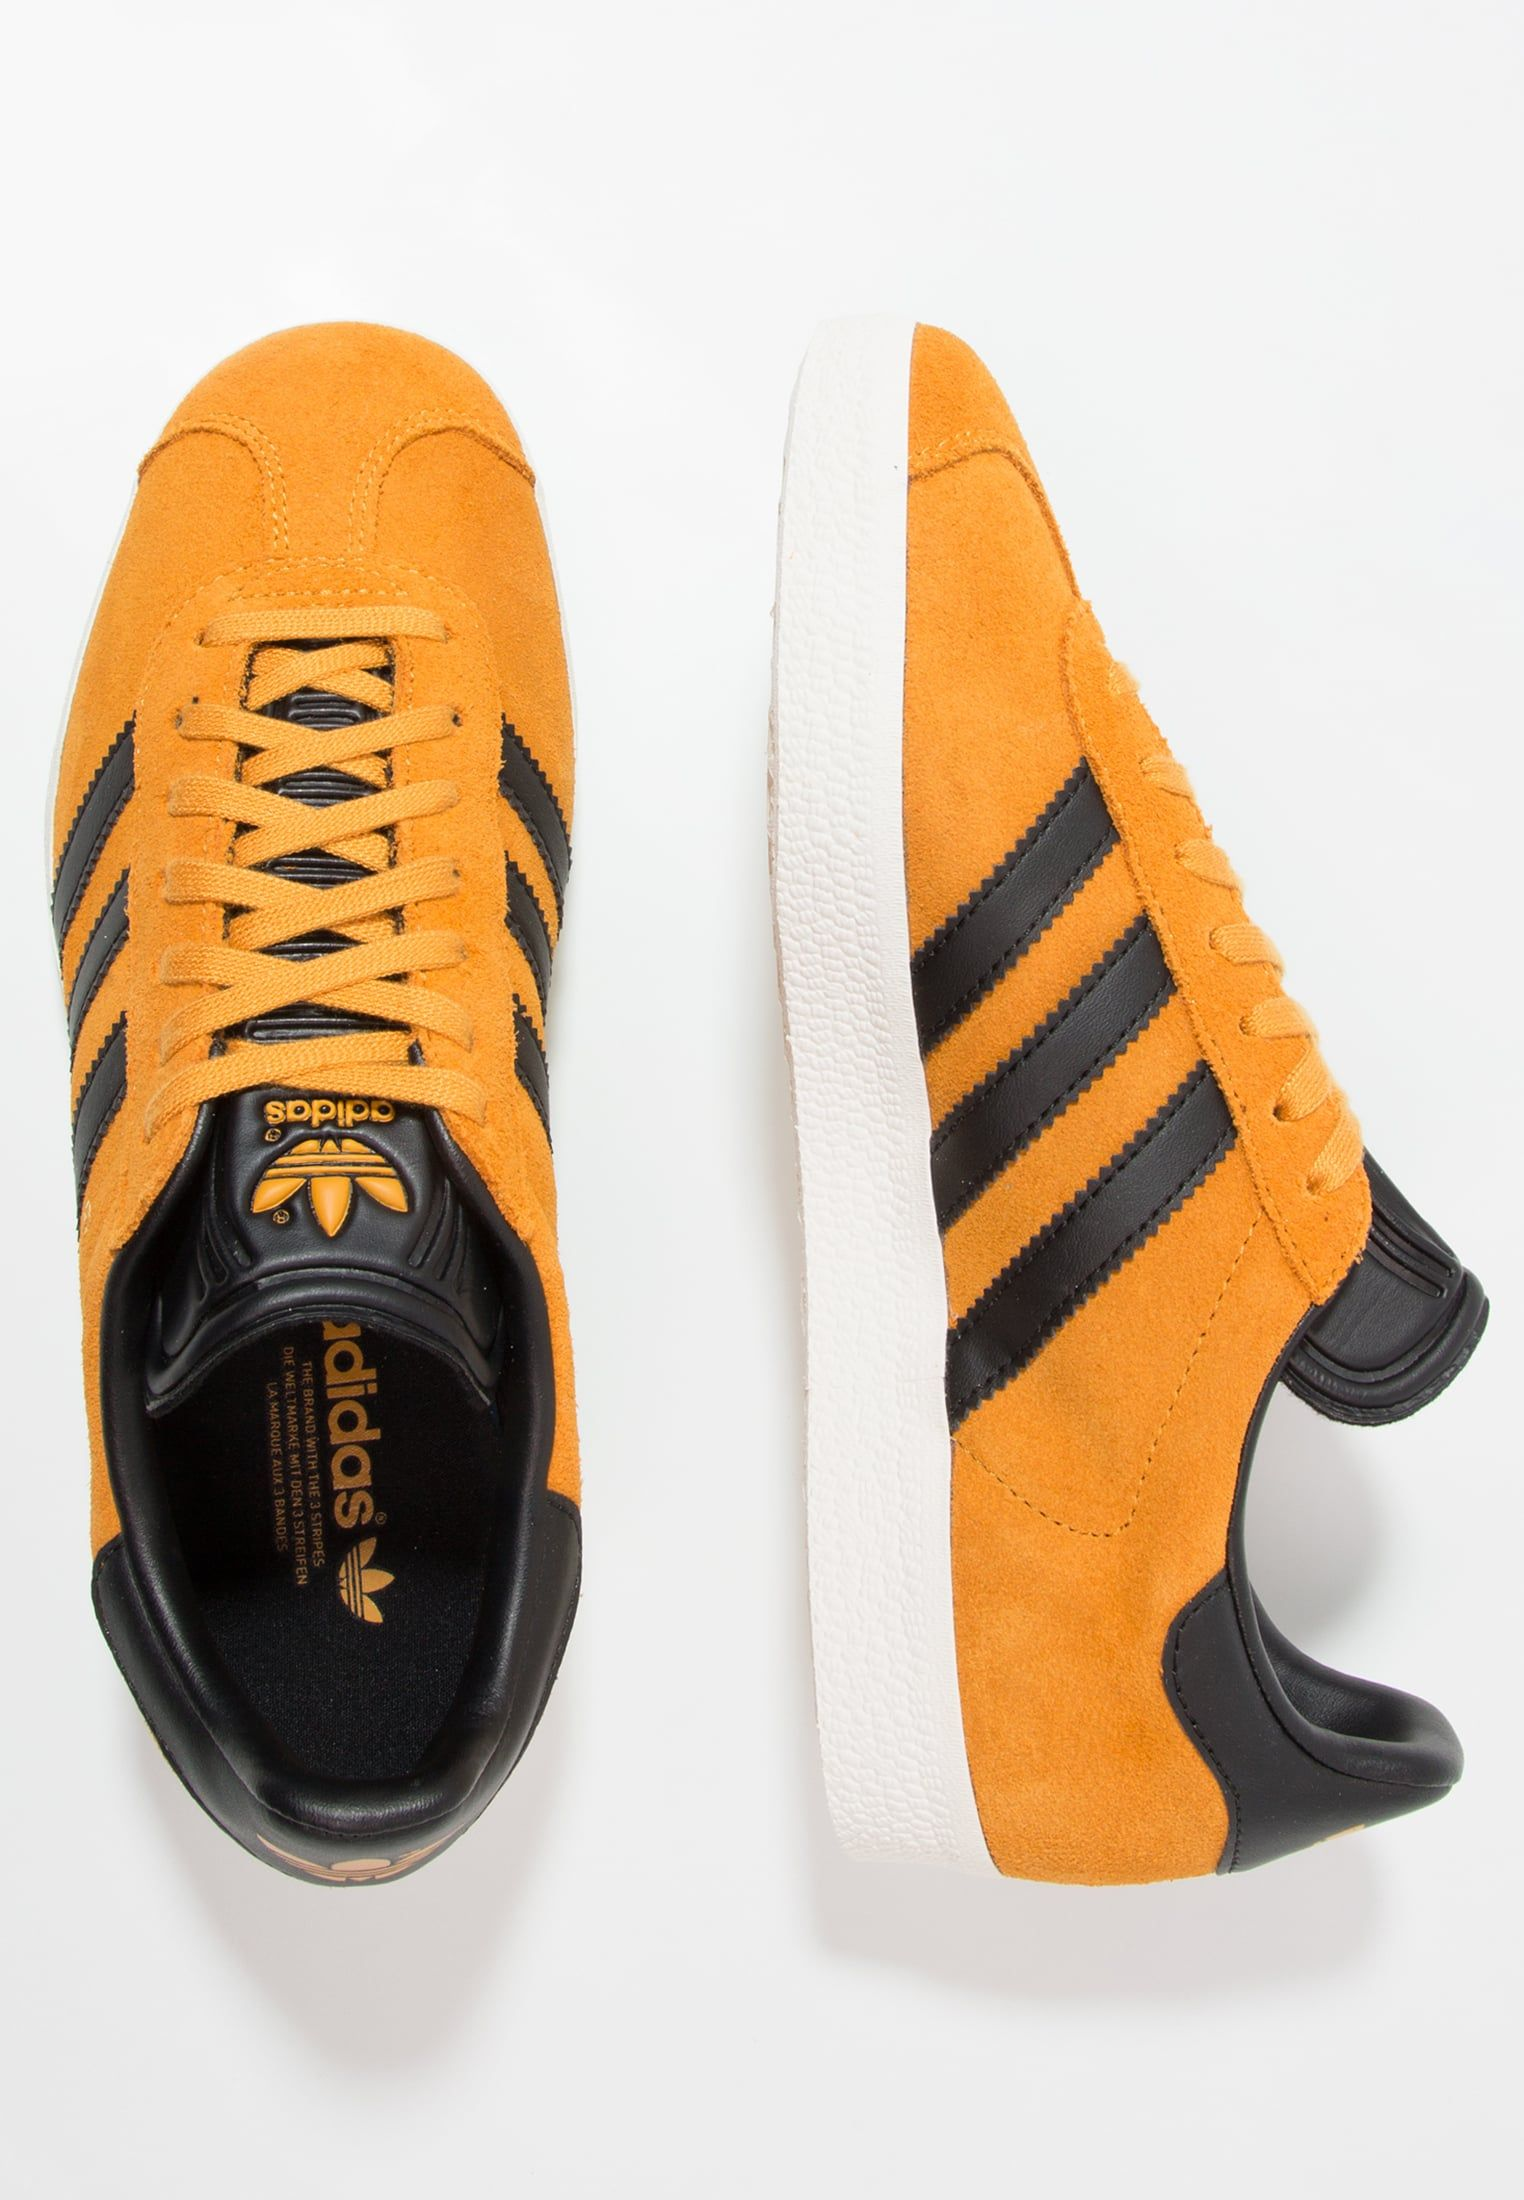 £30 00 Sale Mexicana In Just Colourway Zalando Gazelles The QxordCWBe